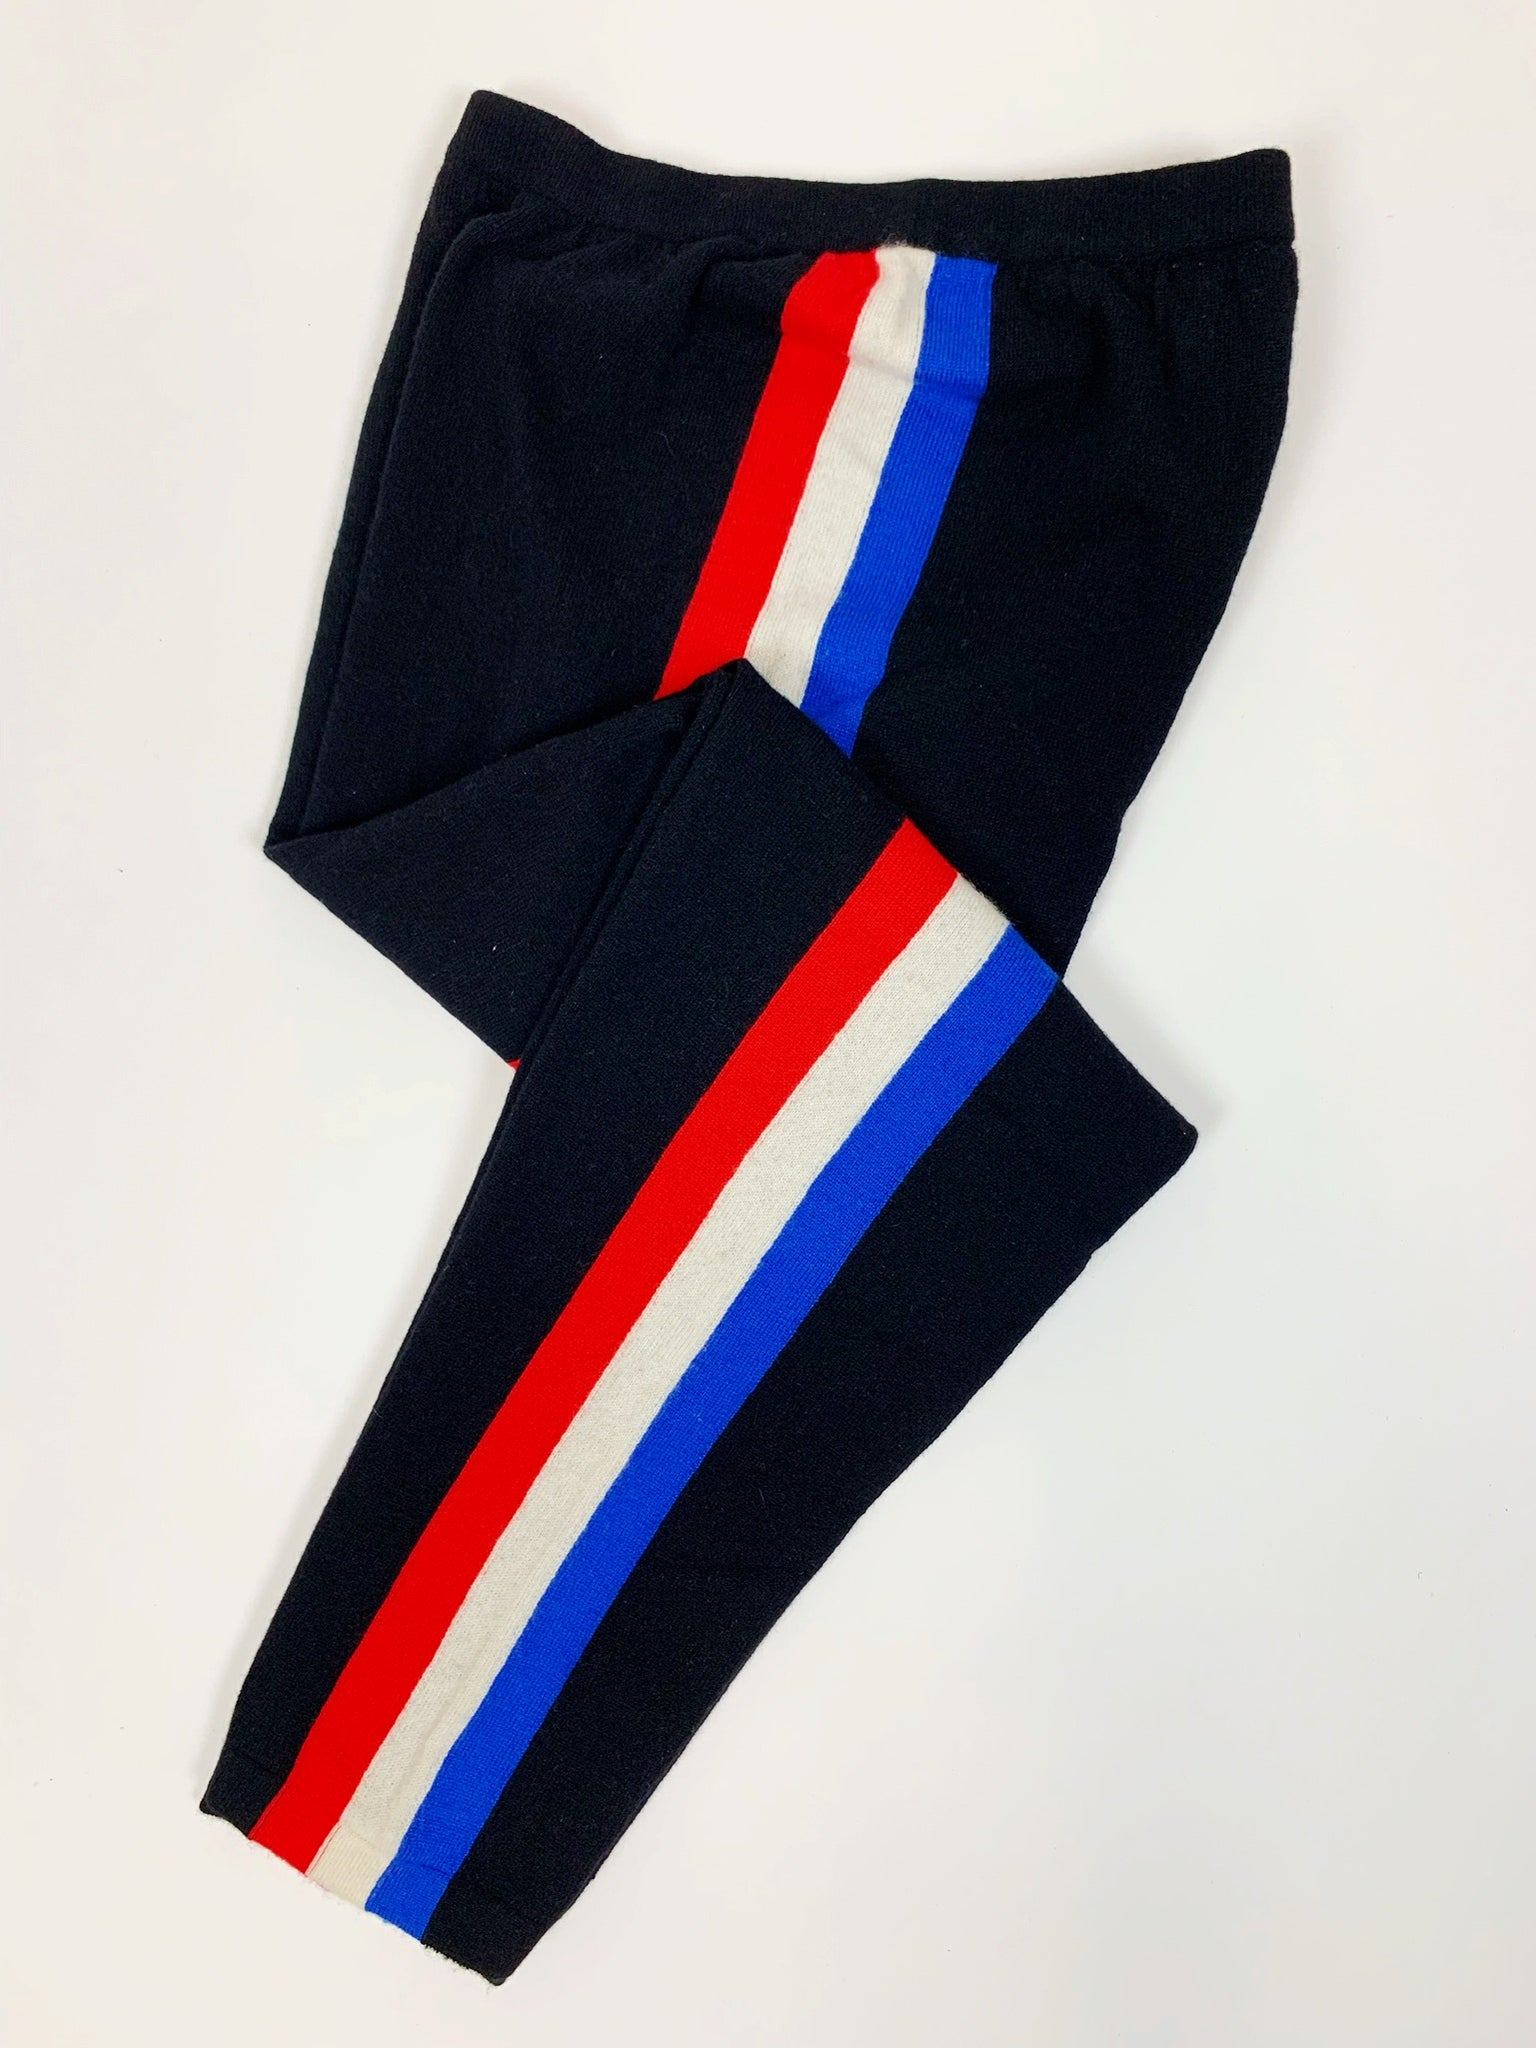 Stripe Cashmere Lounge Pants (RWB)